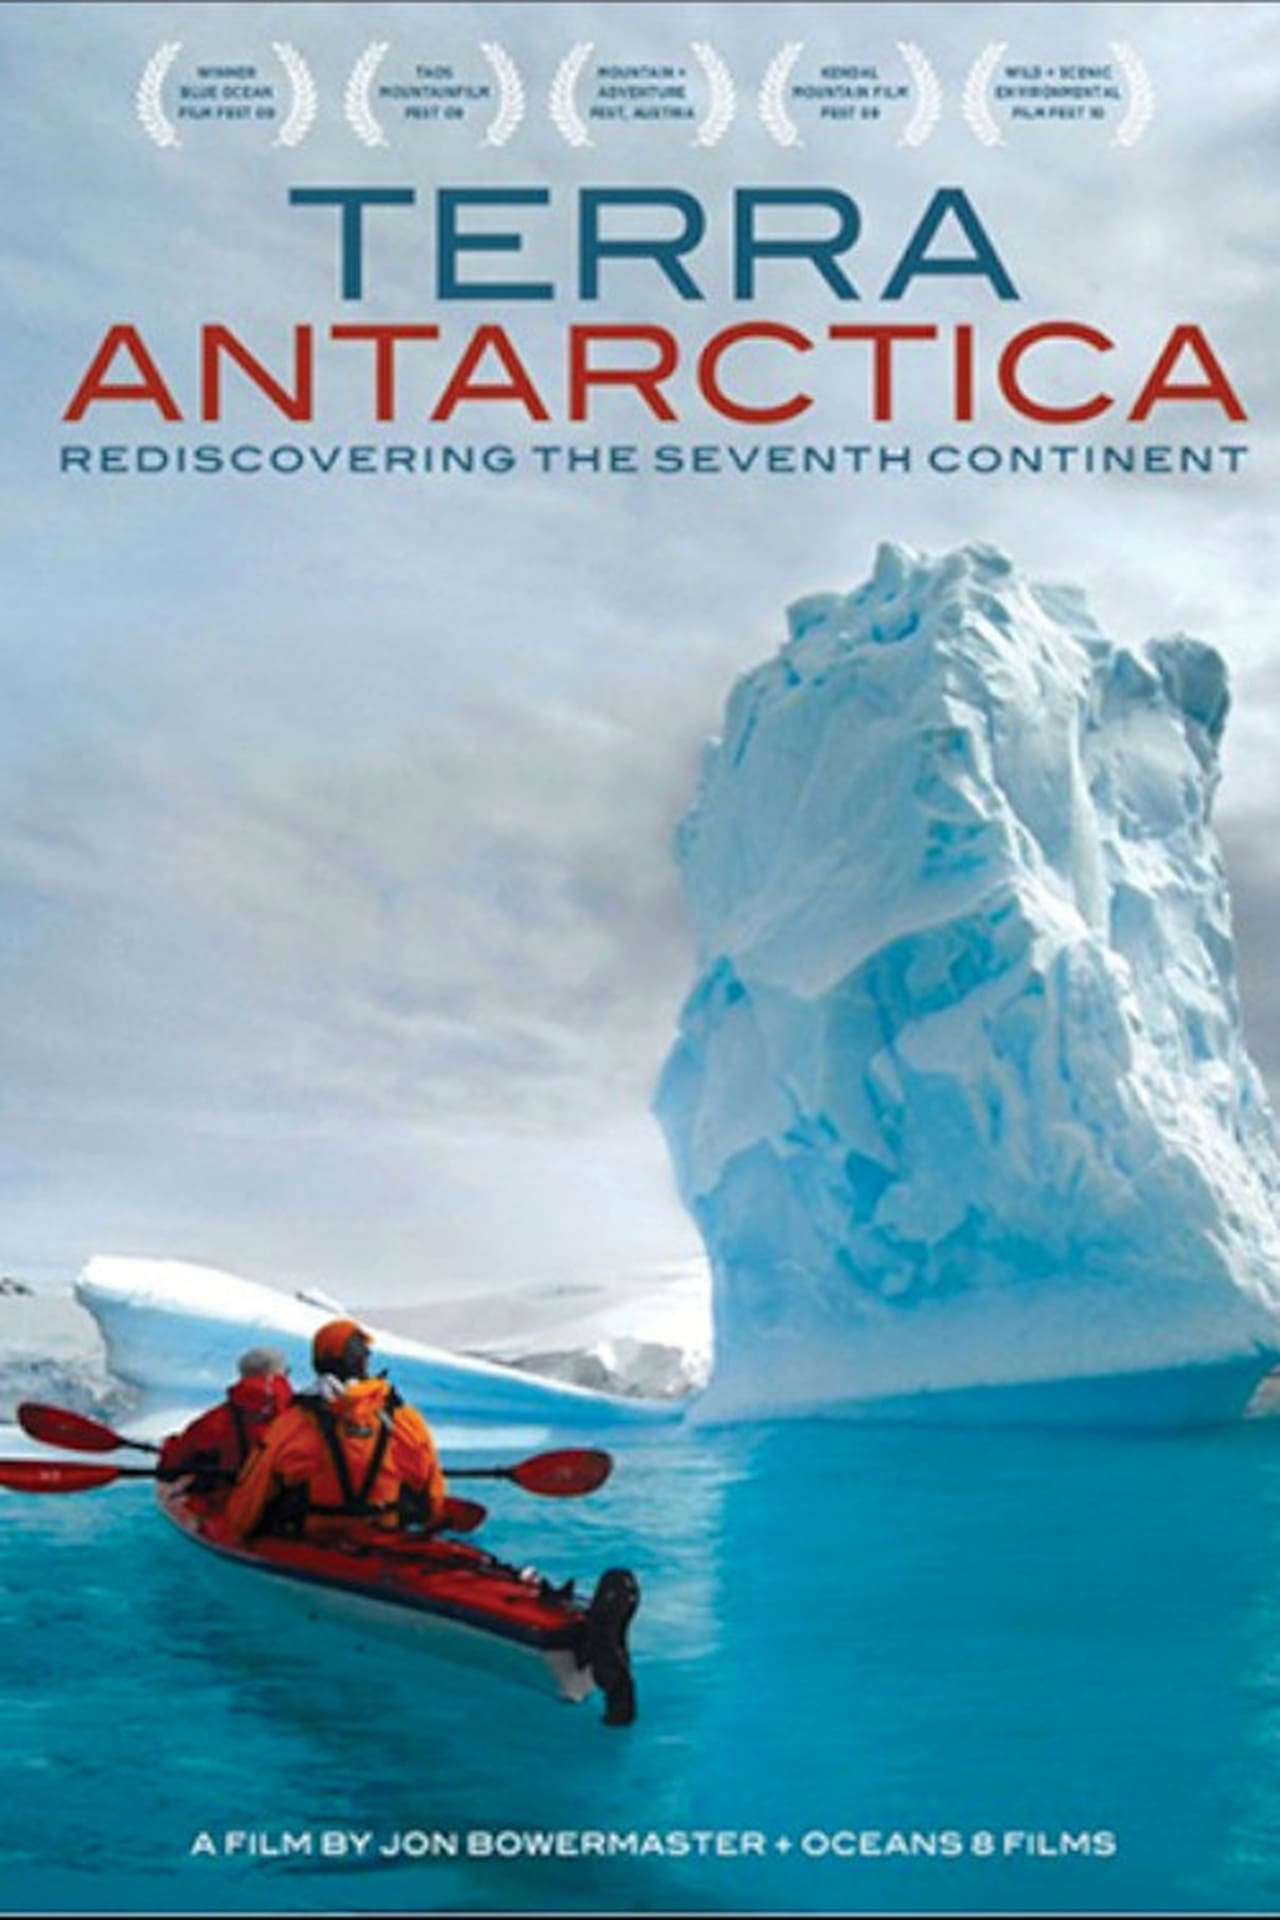 Terra Antarctica, Re-Discovering the Seventh Continent